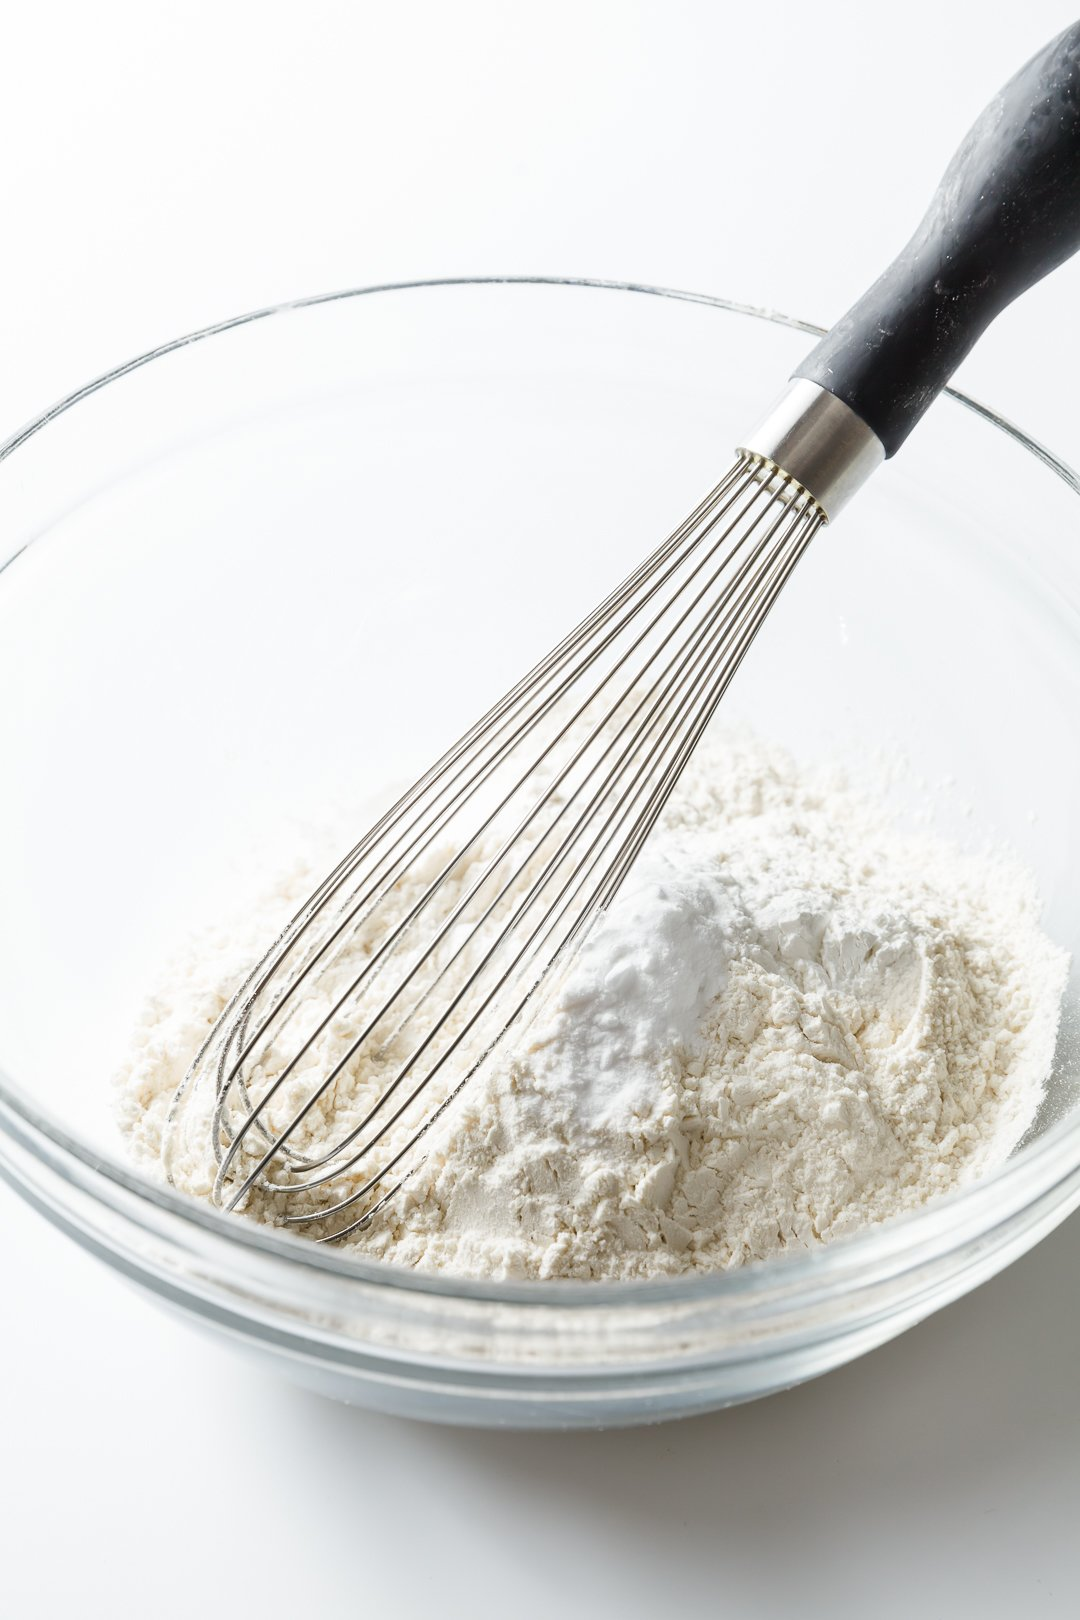 Whisking dry ingredients together in a glass bowl